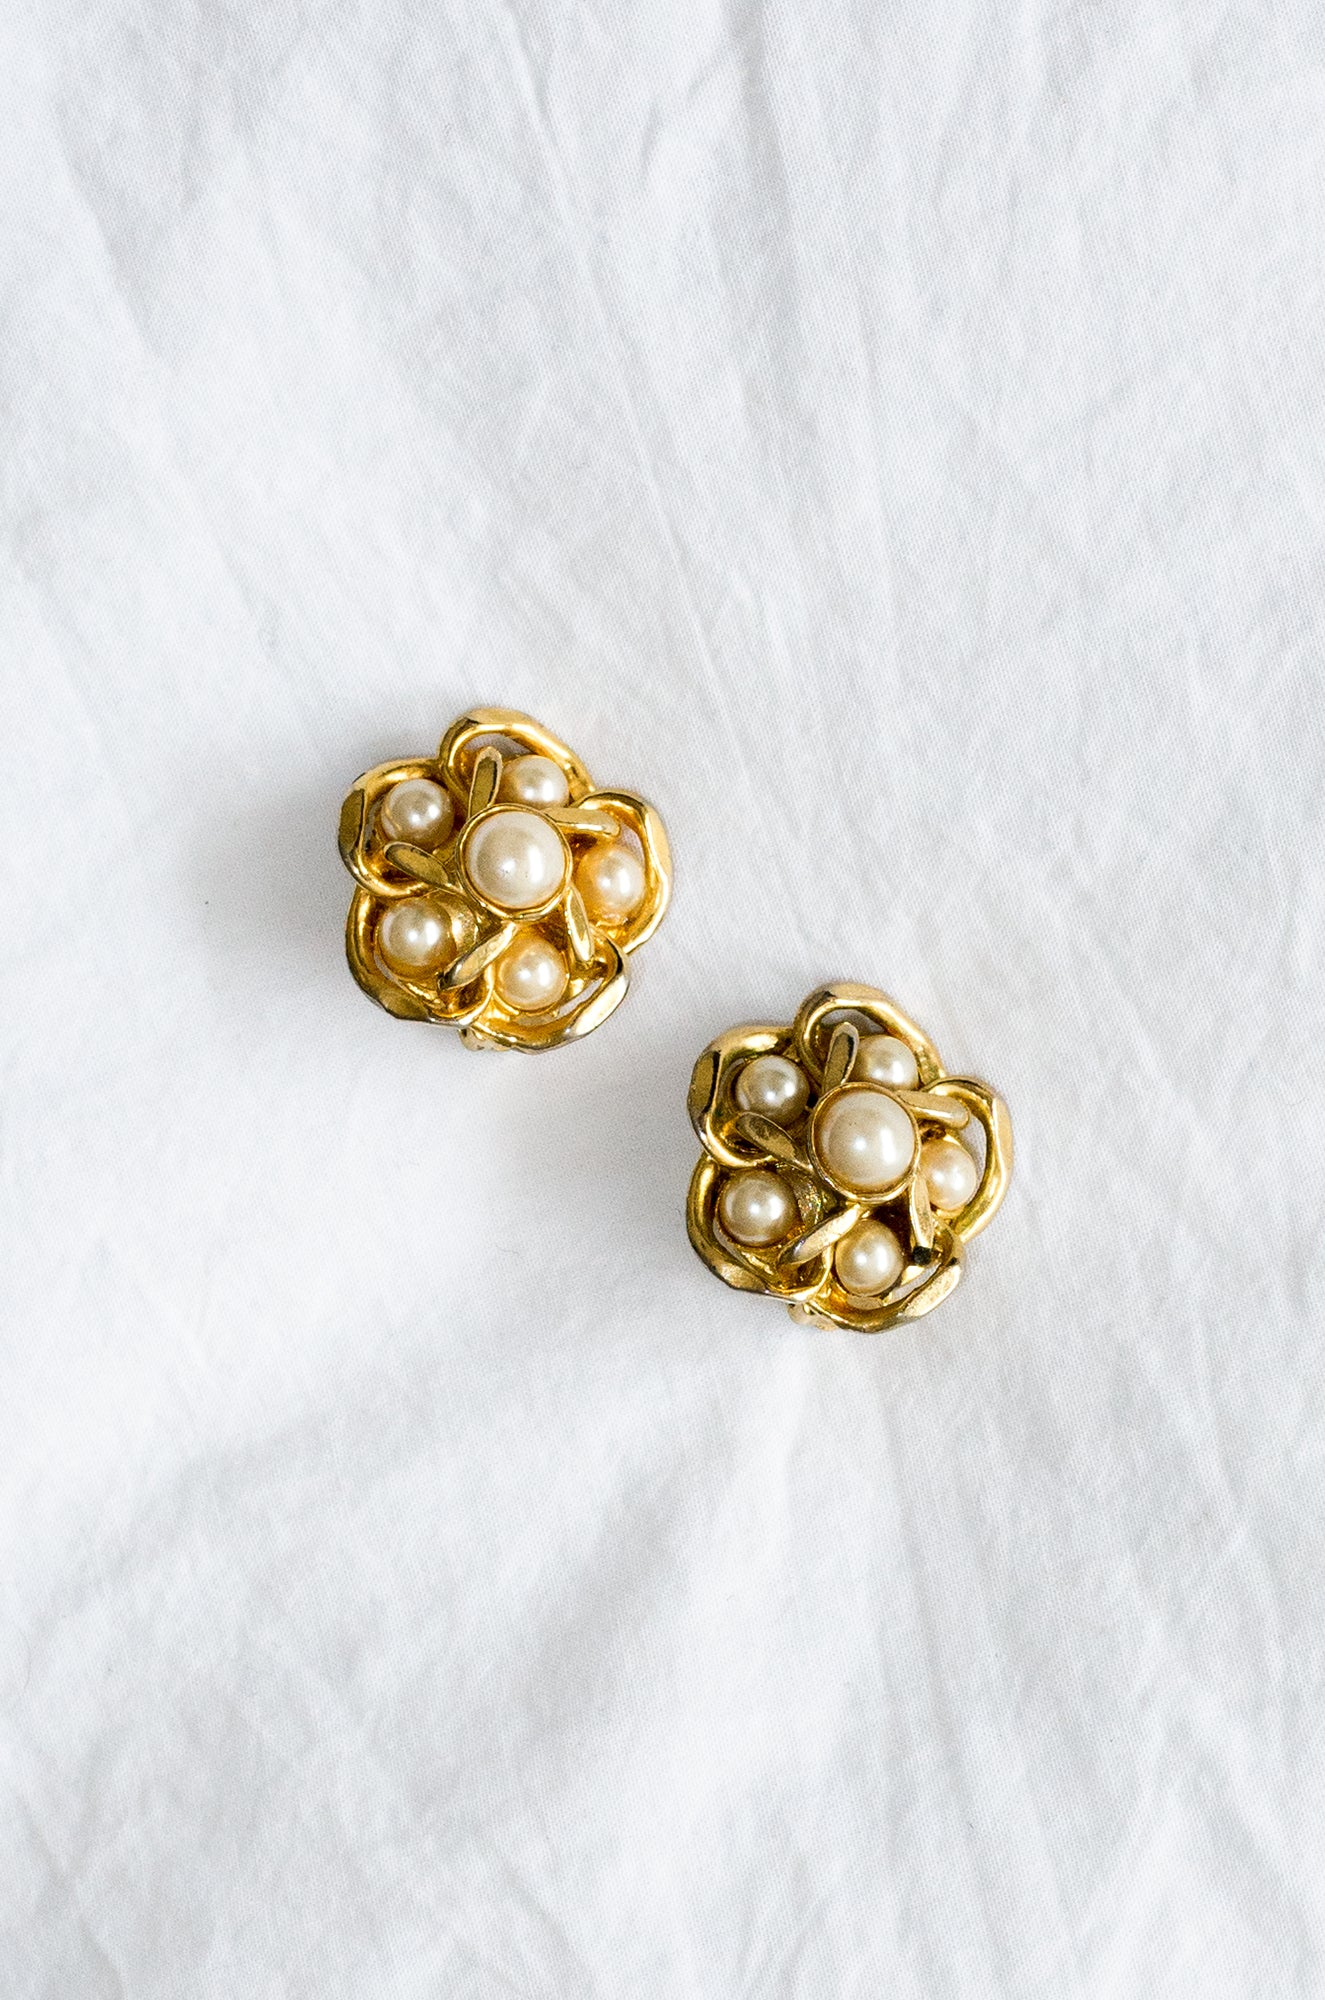 Vintage 1980s gold-tone flower shaped earrings with plastic pearls